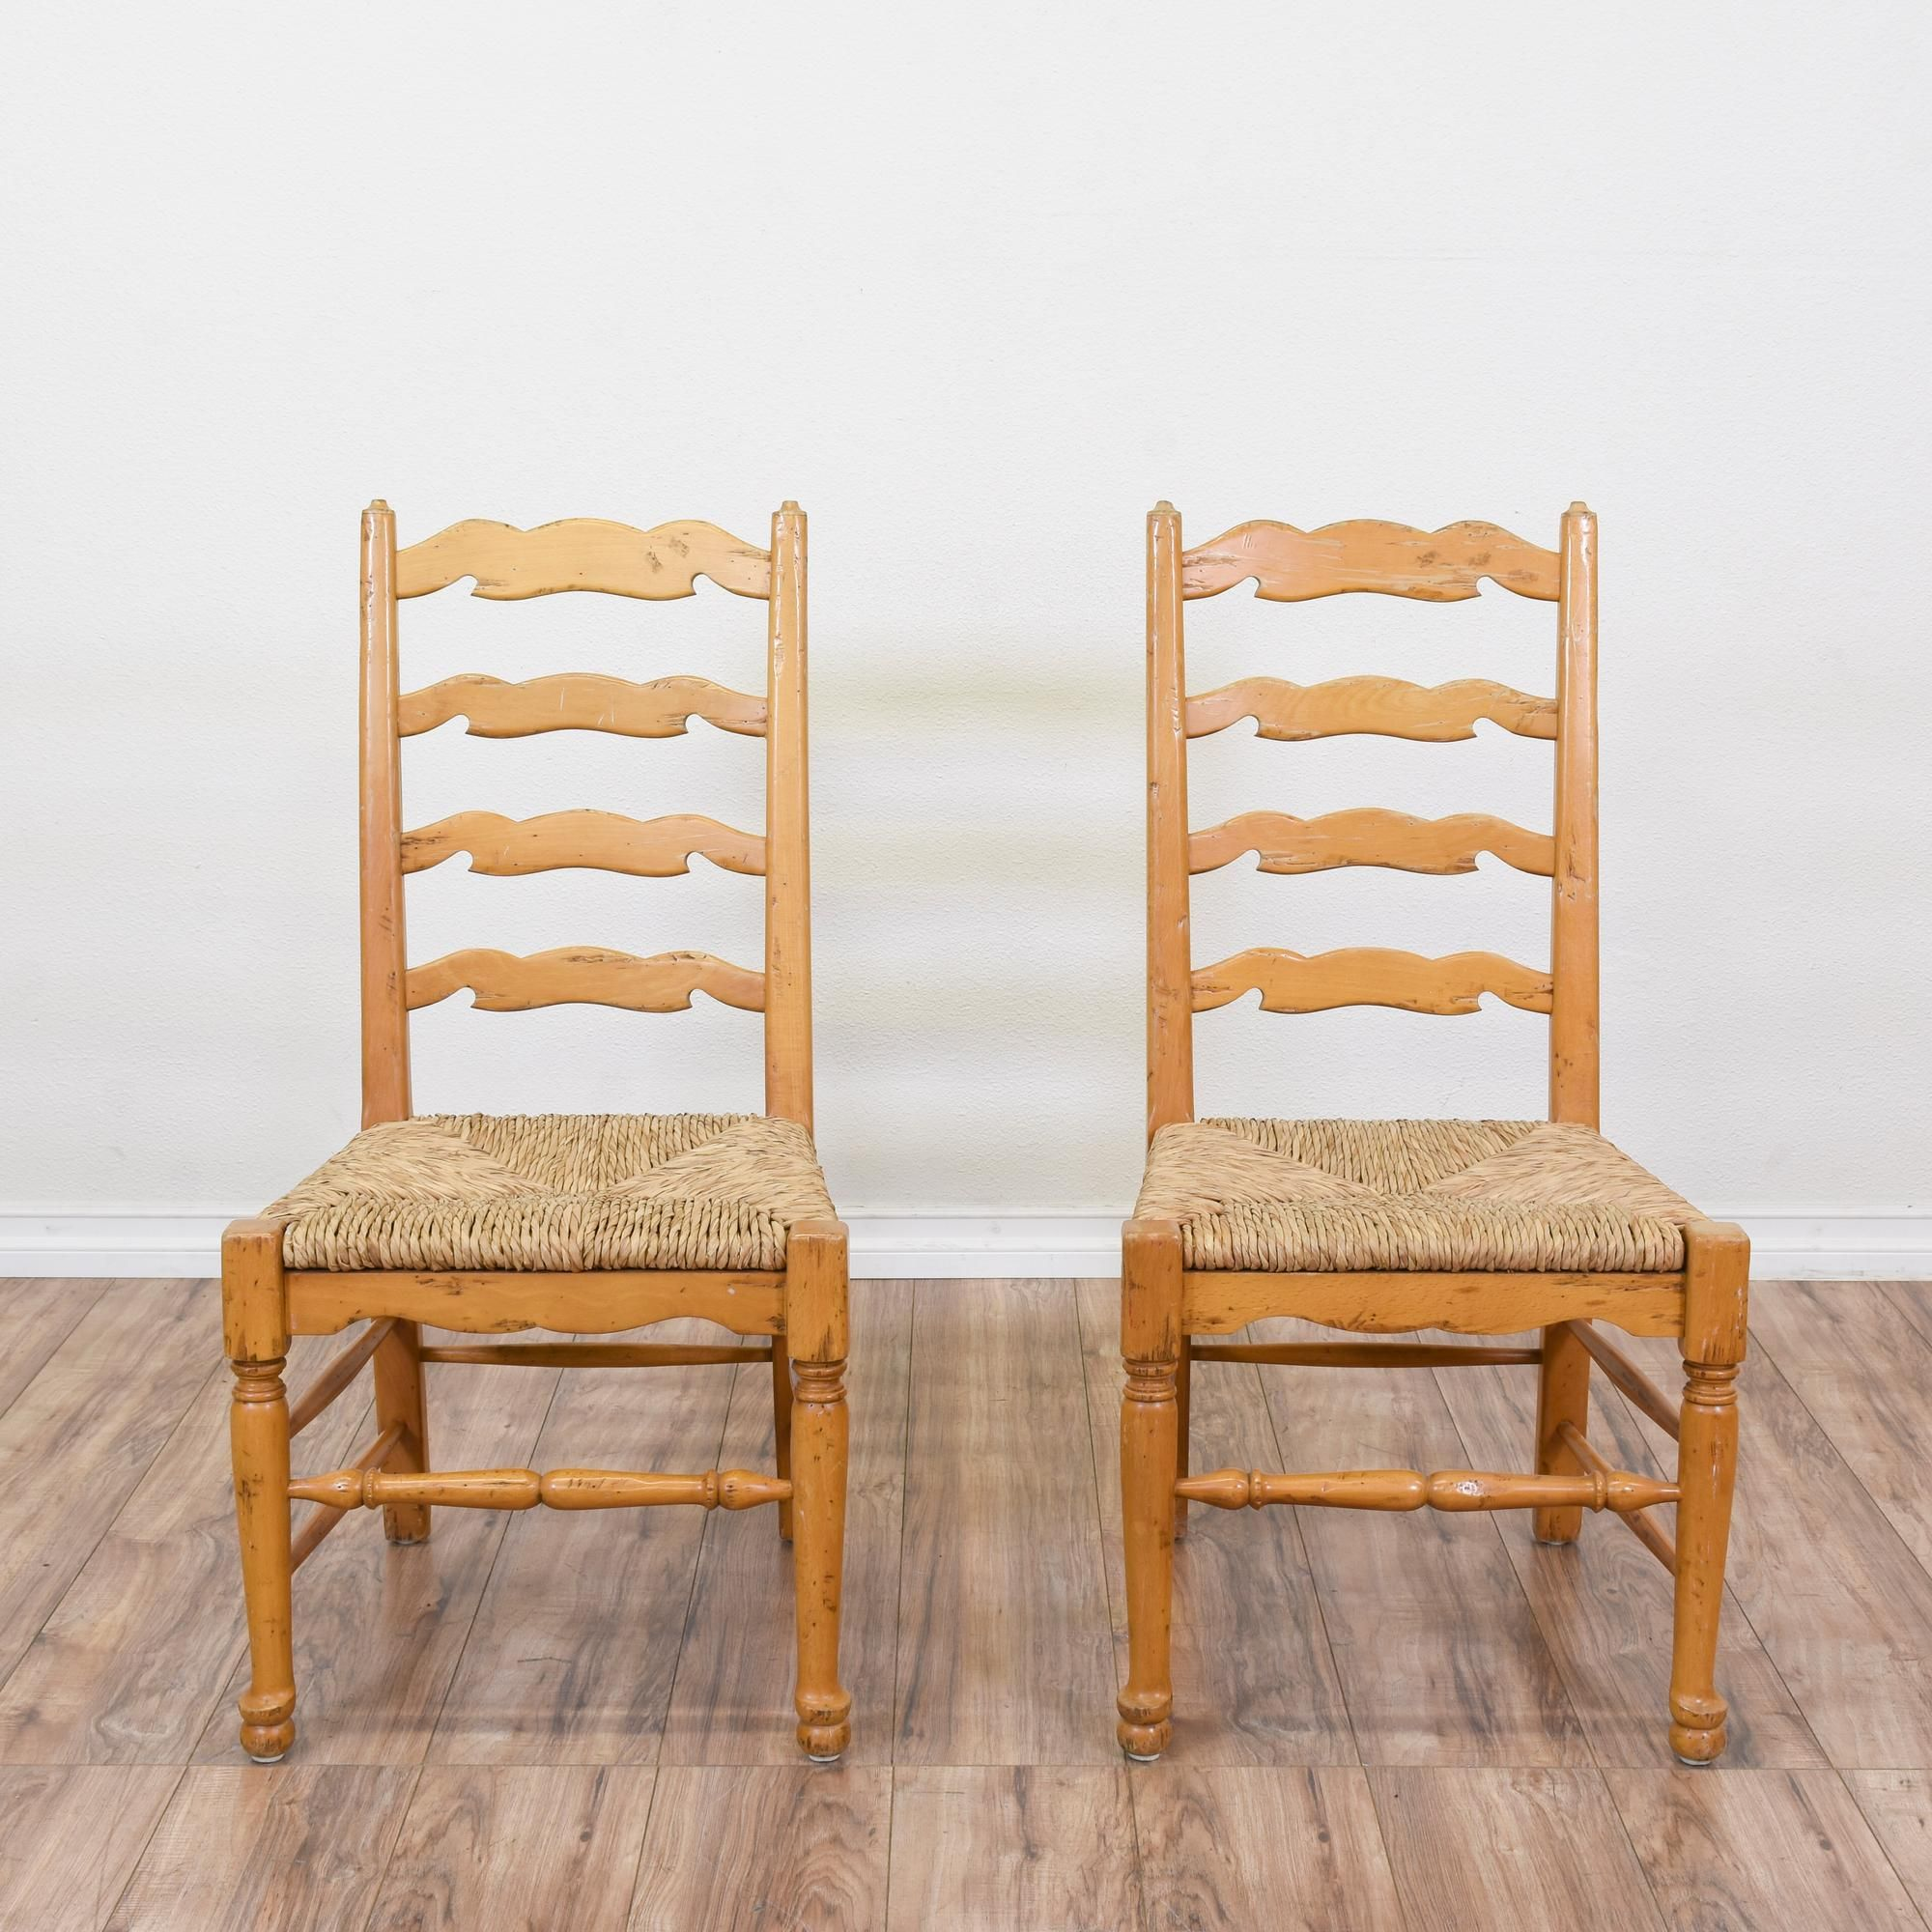 This Pair Of Ladder Back Chairs Are Featured In A Solid Wood With A Light  Blonde